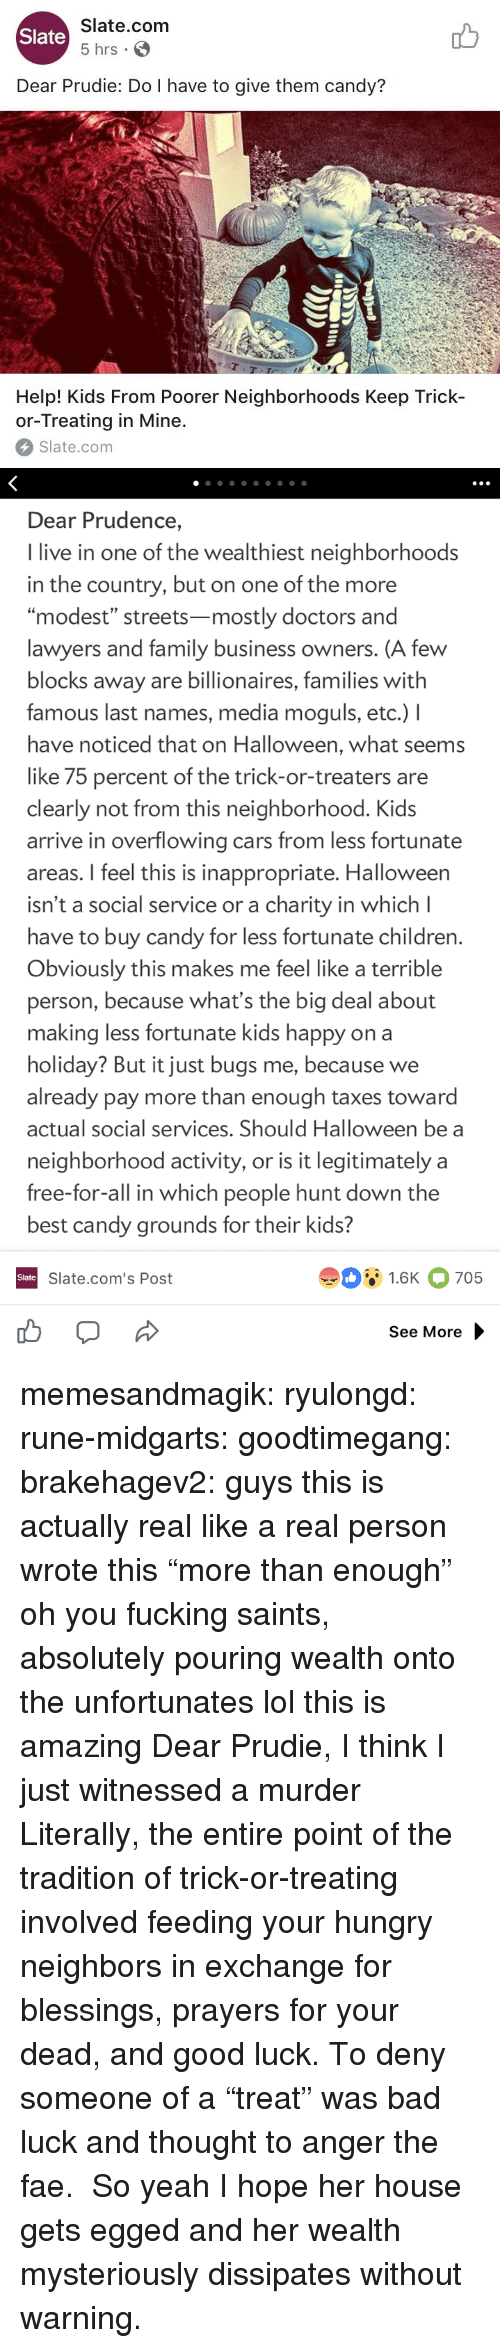 "Bad, Candy, and Cars: Slate.com  5 hrs .  Slate  Dear Prudie: Do I have to give them candy?  aT  T-T  Help! Kids From Poorer Neighborhoods Keep Trick-  or-Treating in Mine.  Slate.com   Dear Prudence,  I live in one of the wealthiest neighborhoods  in the country, but on one of the more  ""modest"" streets-mostly doctors and  lawyers and family business owners. (A few  blocks away are billionaires, families with  famous last names, media moguls, etc.) I  have noticed that on Halloween, what seems  like 75 percent of the trick-or-treaters are  clearly not from this neighborhood. Kids  arrive in overflowing cars from less fortunate  areas. I feel this is inappropriate. Halloween  isn't a social service or a charity in which l  have to buy candy for less fortunate children  Obviously this makes me feel like a terrible  person, because what's the big deal about  making less fortunate kids happy on a  holiday? But it just bugs me, because we  already pay more than enough taxes toward  actual social services. Should Halloween be a  neighborhood activity, or is it legitimately a  free-for-all in which people hunt down the  best candy grounds for their kids?  91.6K 705  Slate  Slate.com's Post  See More memesandmagik: ryulongd:  rune-midgarts:  goodtimegang:  brakehagev2:  guys this is actually real like a real person wrote this  ""more than enough"" oh you fucking saints, absolutely pouring wealth onto the unfortunates   lol this is amazing   Dear Prudie, I think I just witnessed a murder  Literally, the entire point of the tradition of trick-or-treating involved feeding your hungry neighbors in exchange for blessings, prayers for your dead, and good luck. To deny someone of a ""treat"" was bad luck and thought to anger the fae.  So yeah I hope her house gets egged and her wealth mysteriously dissipates without warning."